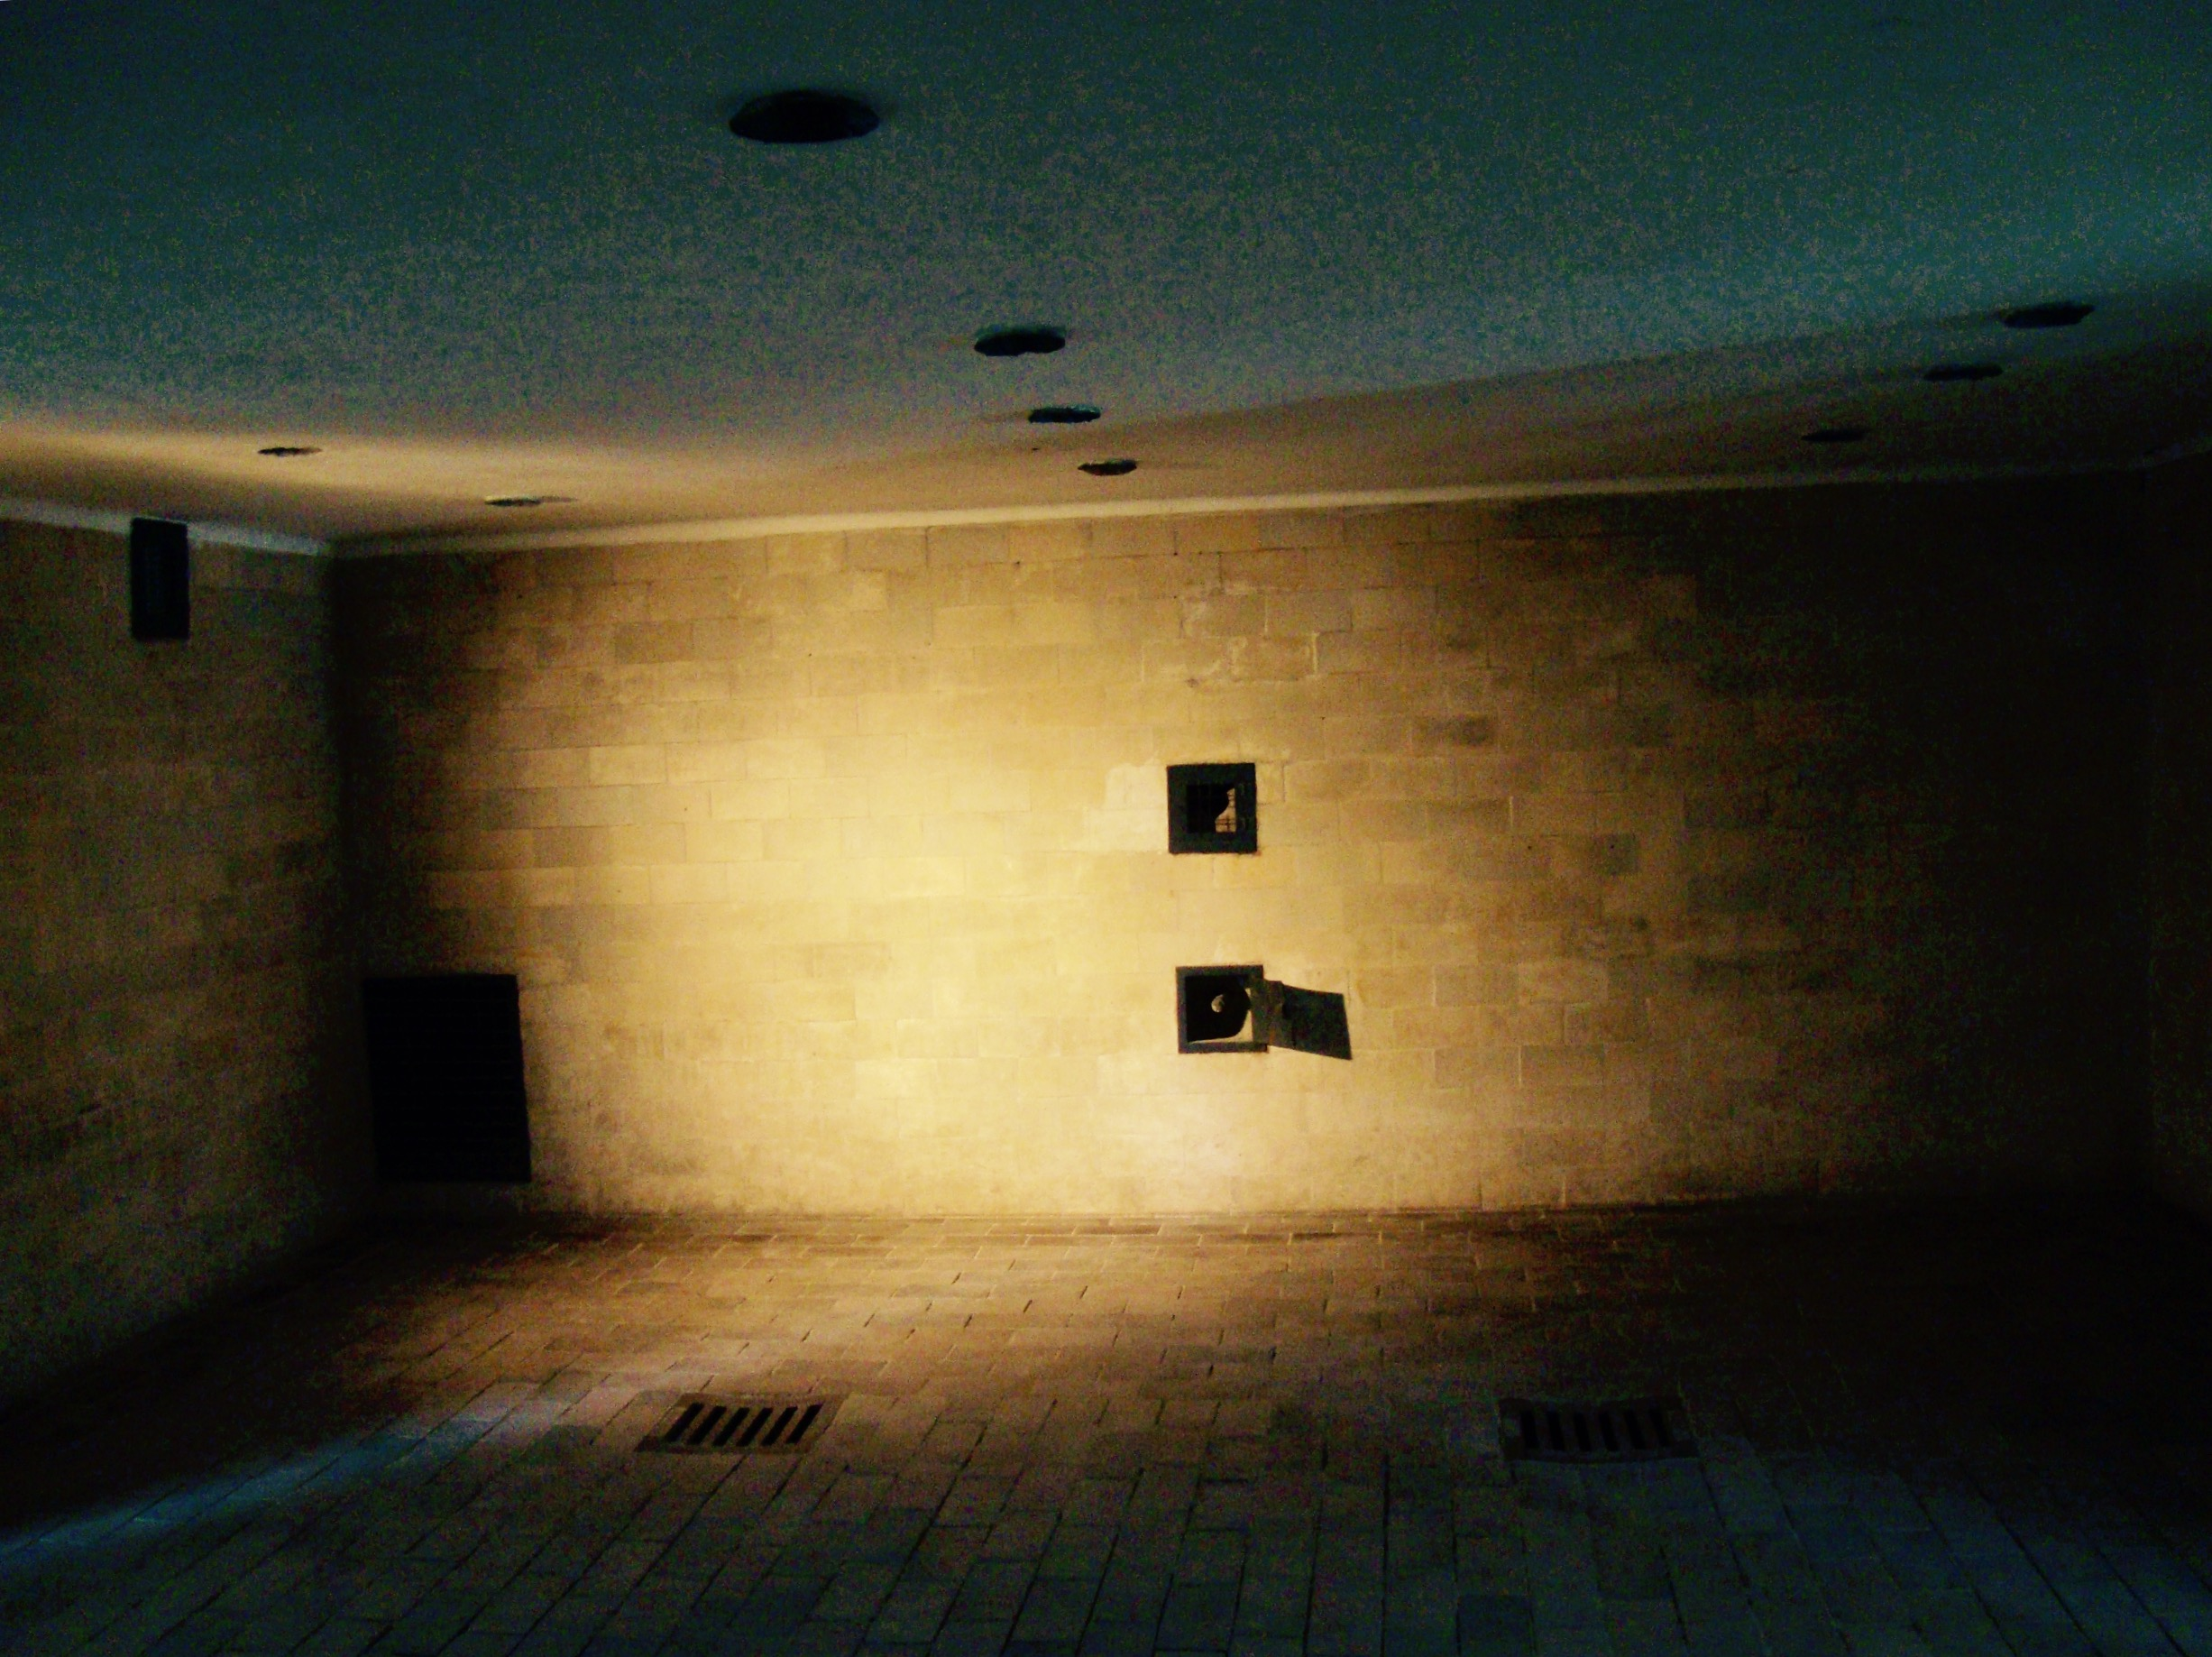 The gas chamber used to murder individual prisoners & small groups using poison gas.